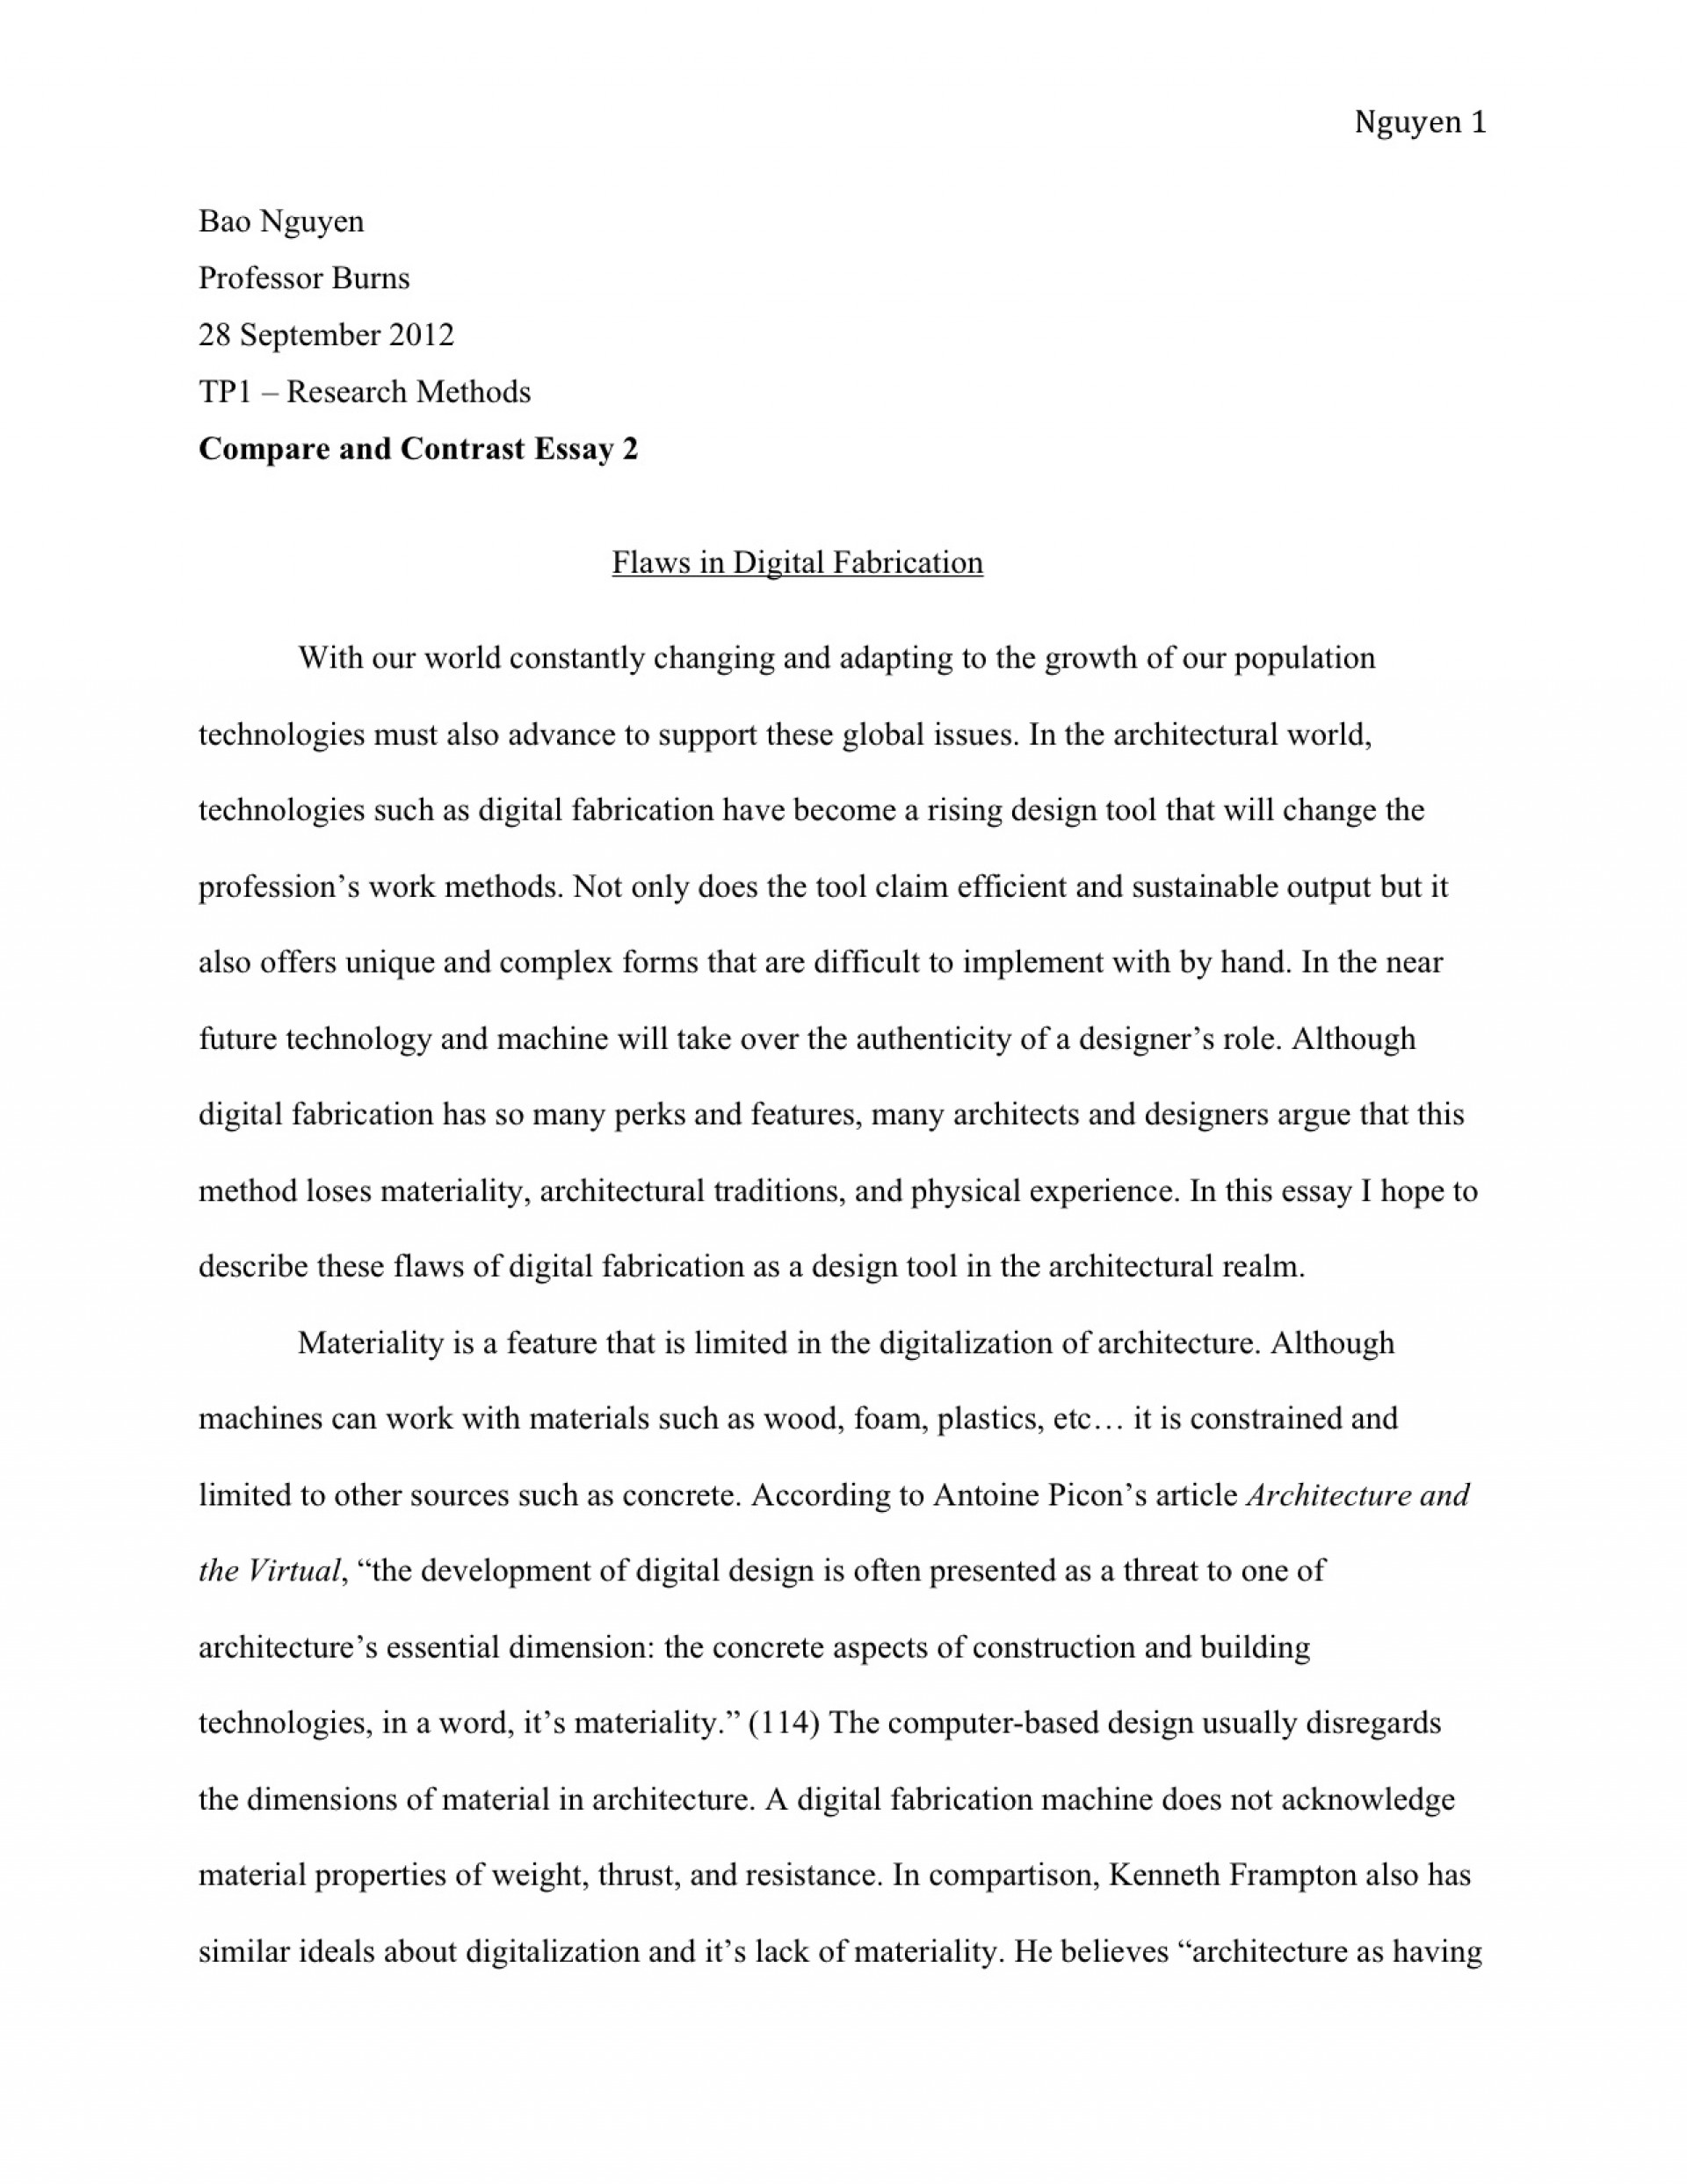 005 How To Write An Essay Example Tp1 3 Shocking About Myself For A Scholarship Excellent Conclusion Pdf 1920